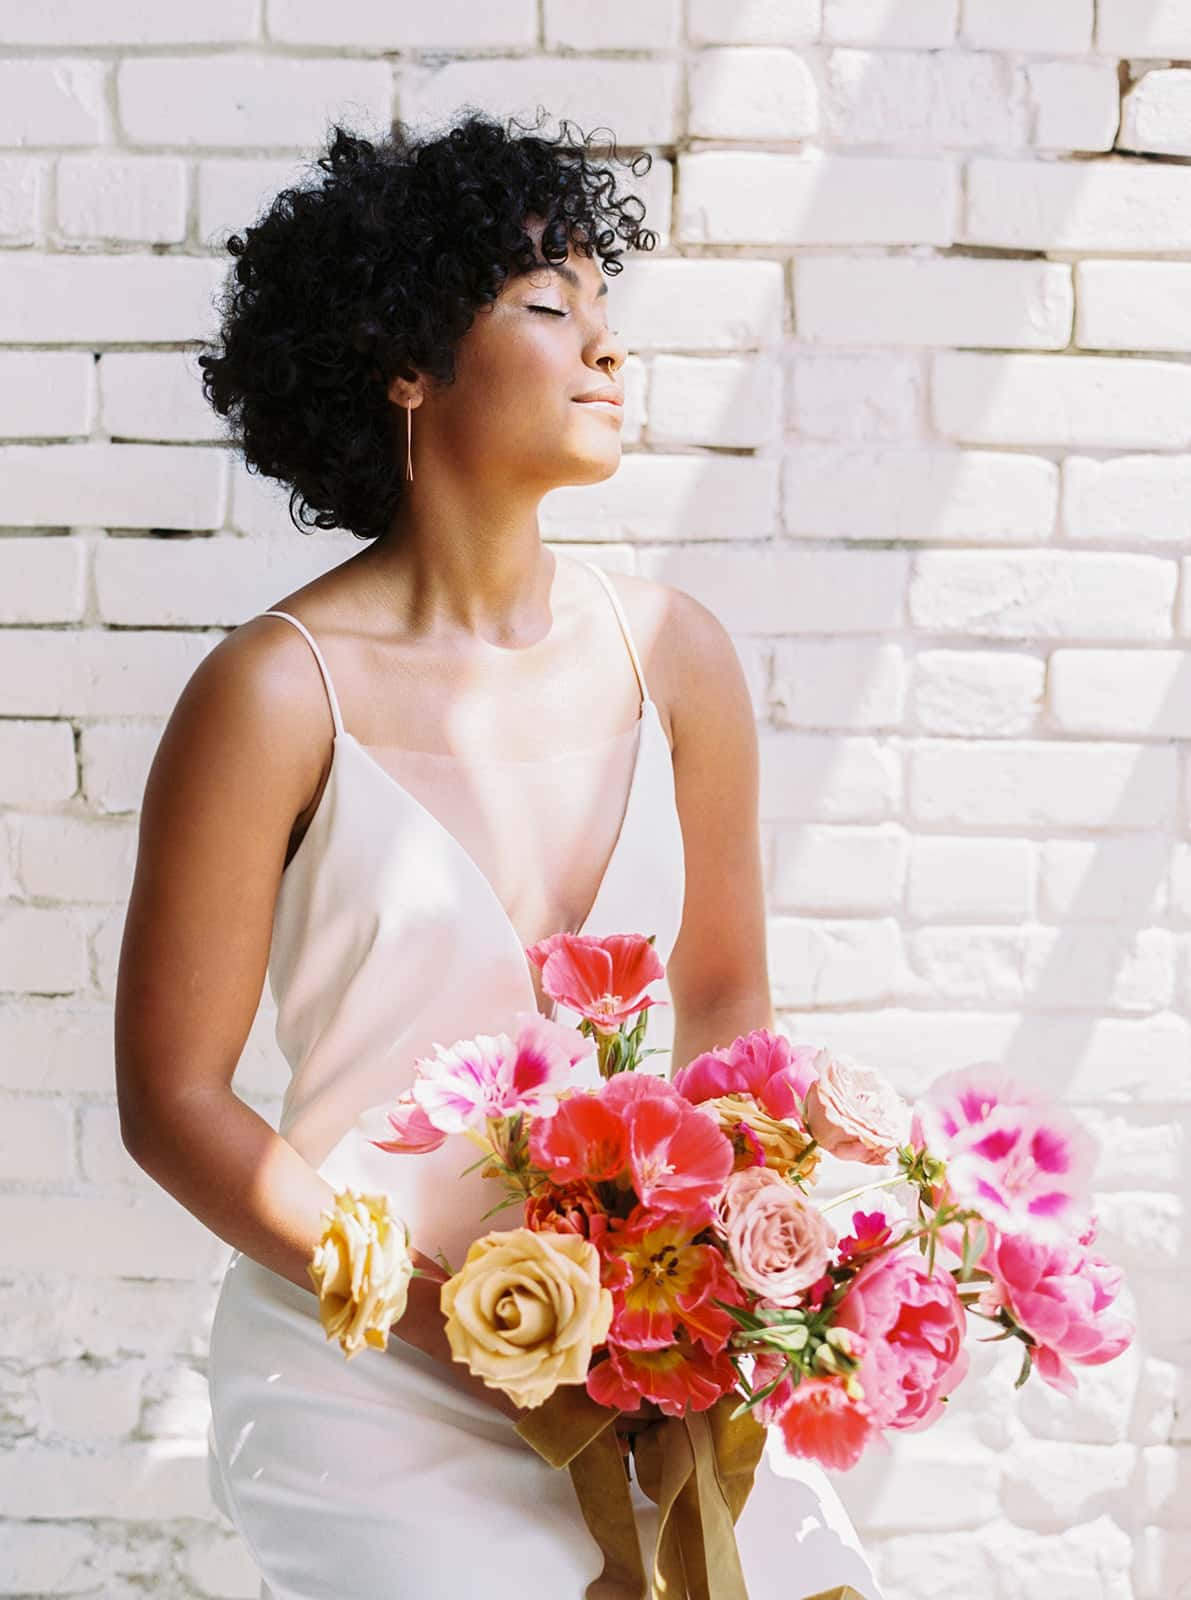 Bridal bouquet designed by Color Theory Collective